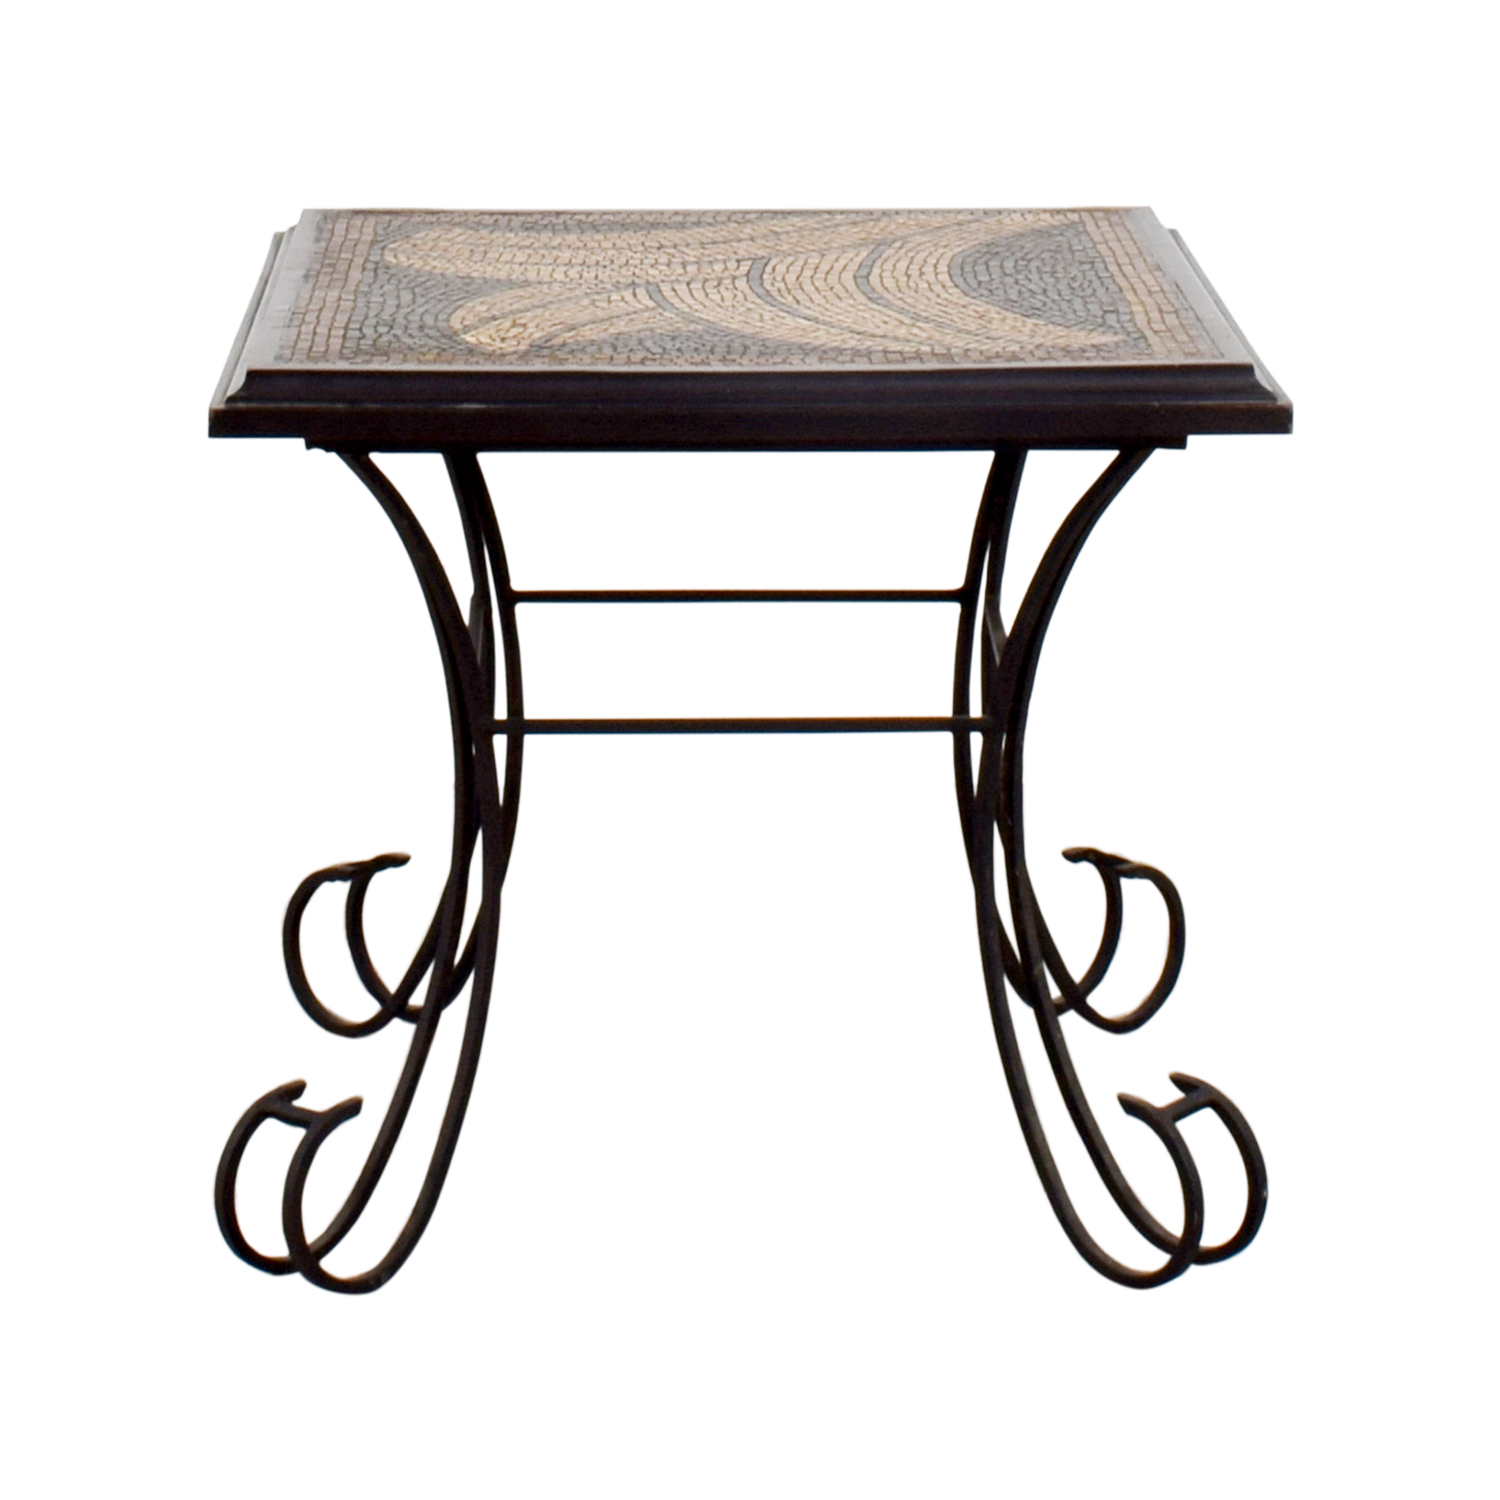 Pleasing 80 Off Pier 1 Pier 1 Imports Hand Painted Mexican Tile Table Tables Caraccident5 Cool Chair Designs And Ideas Caraccident5Info